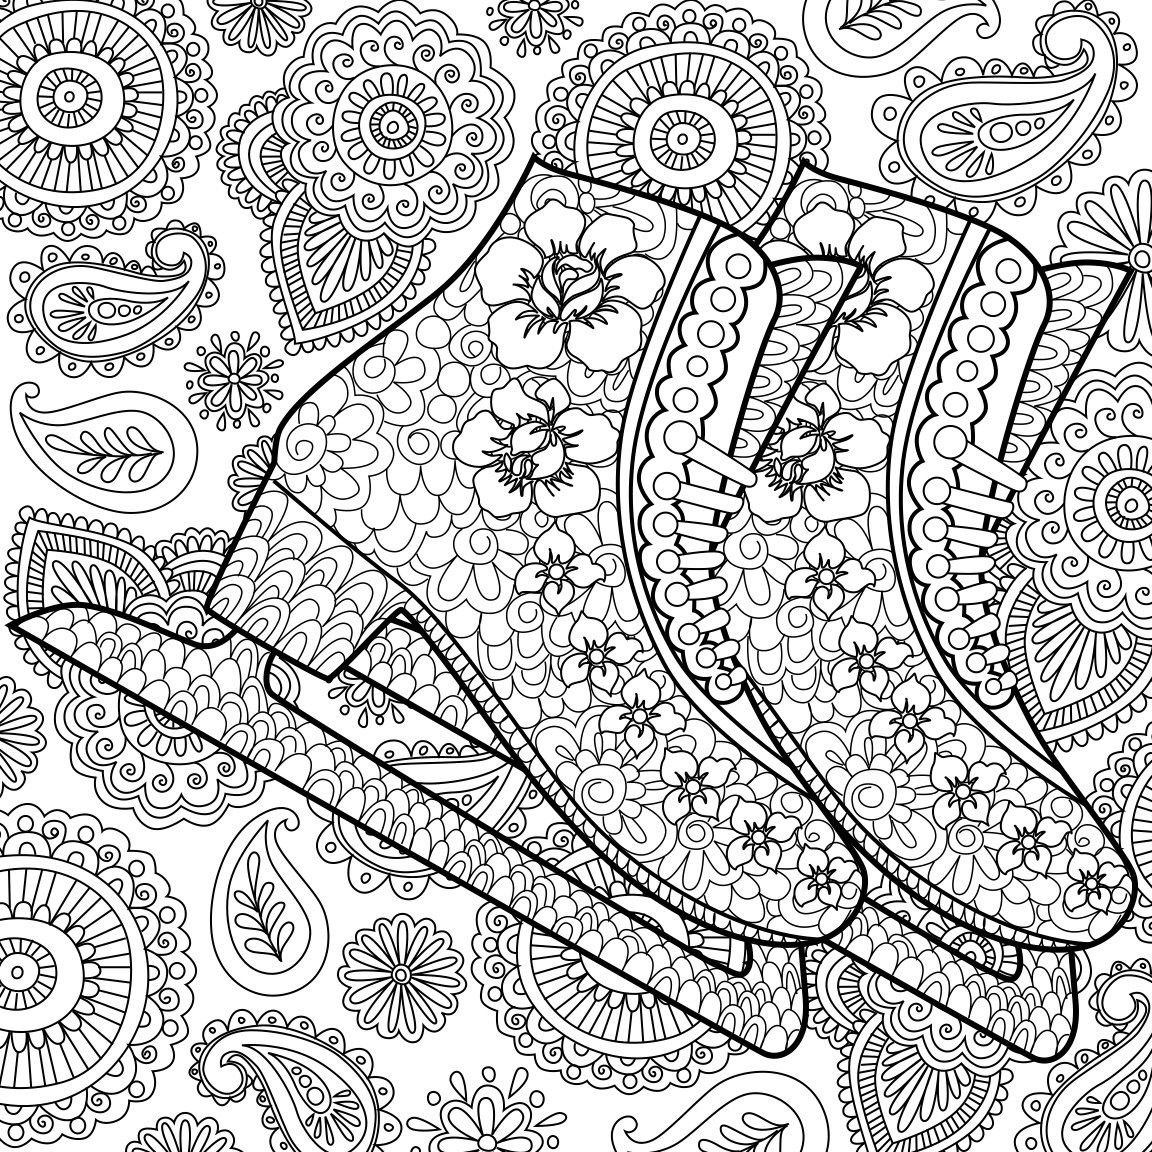 Printable Coloring Page Zentangle Figure Skating Coloring Book By